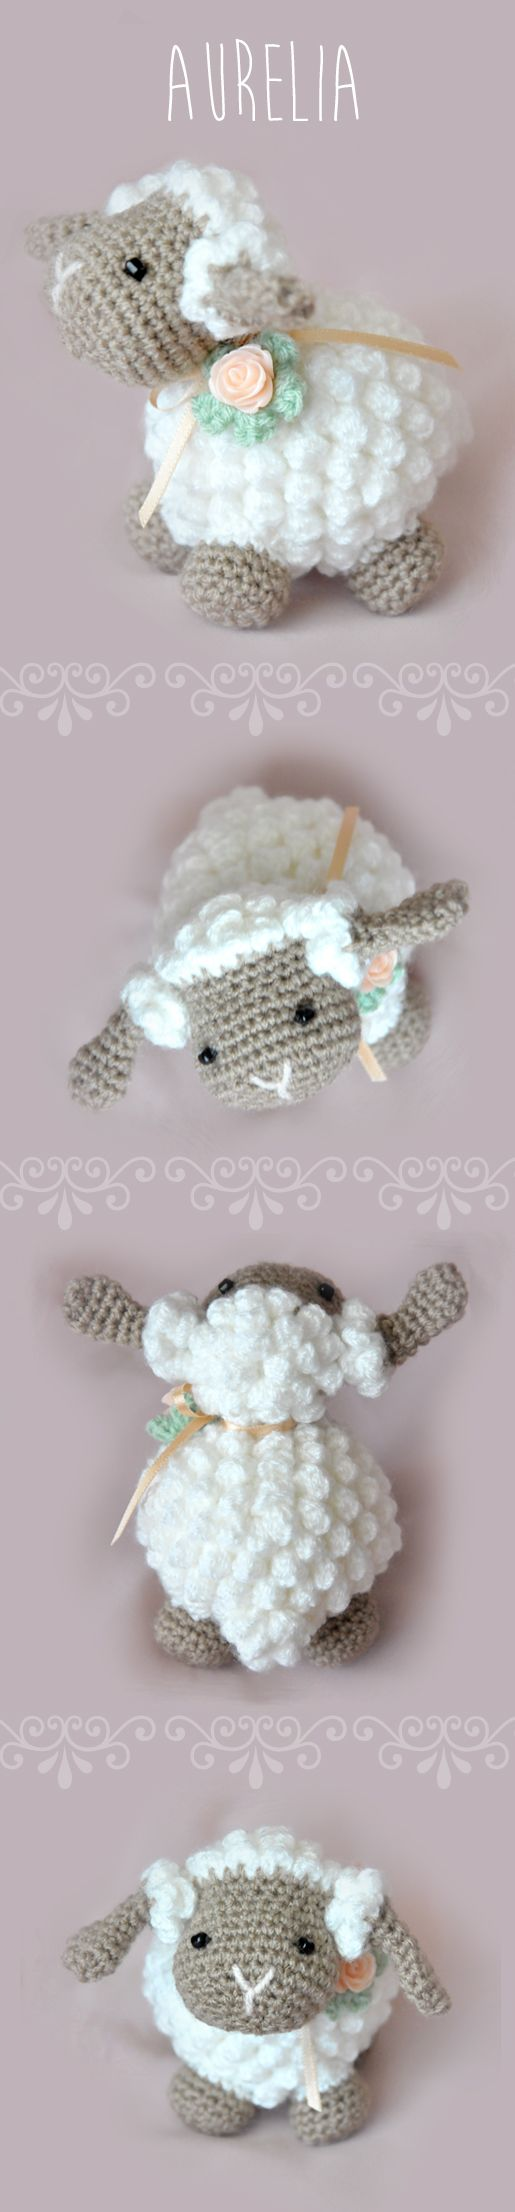 Adorable amigurumi sheep